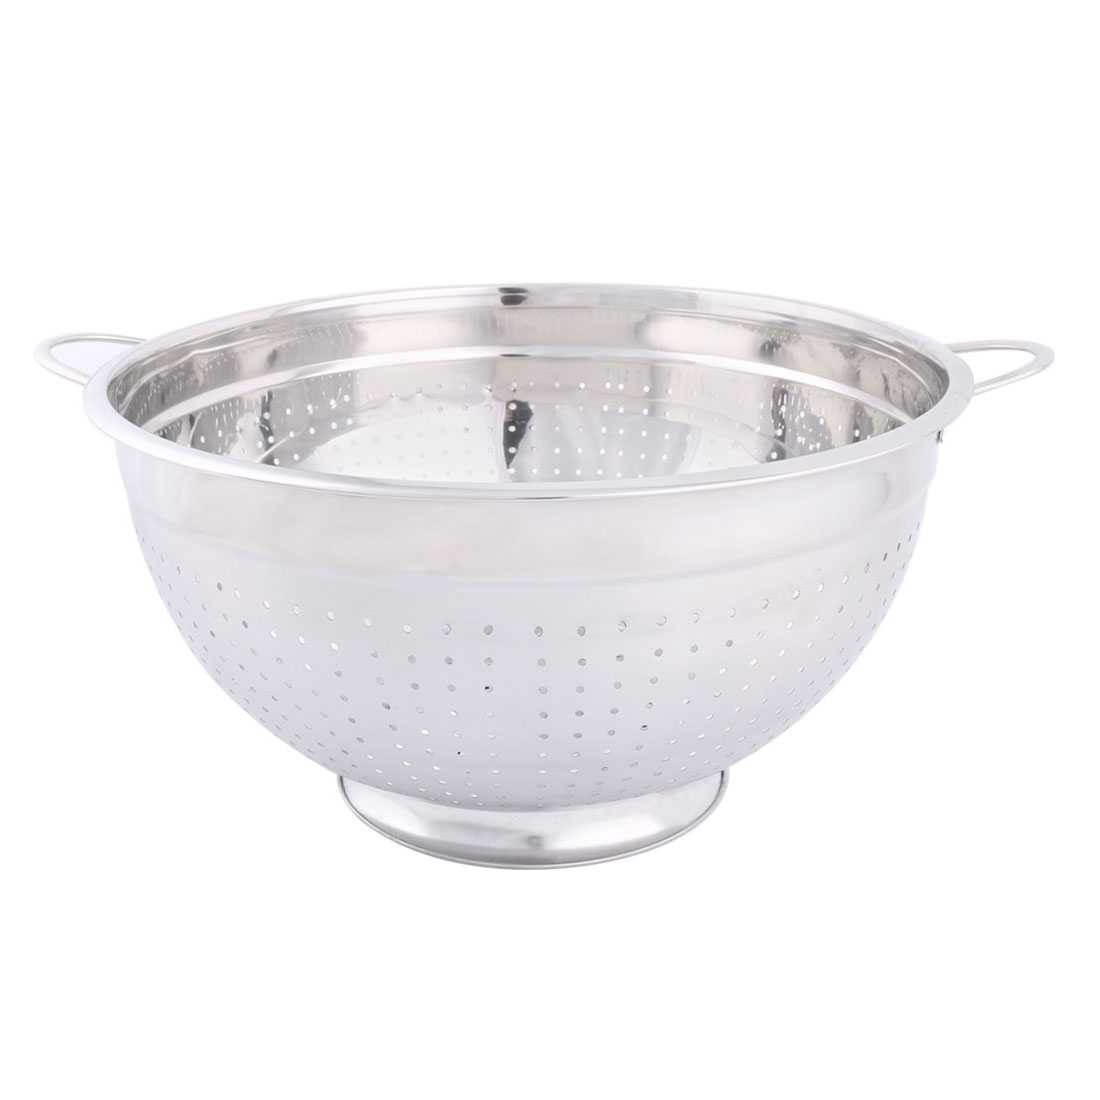 Household Stainless Steel Fruit Vegetable Nuts Drain Basket Silver Tone 32cm Dia